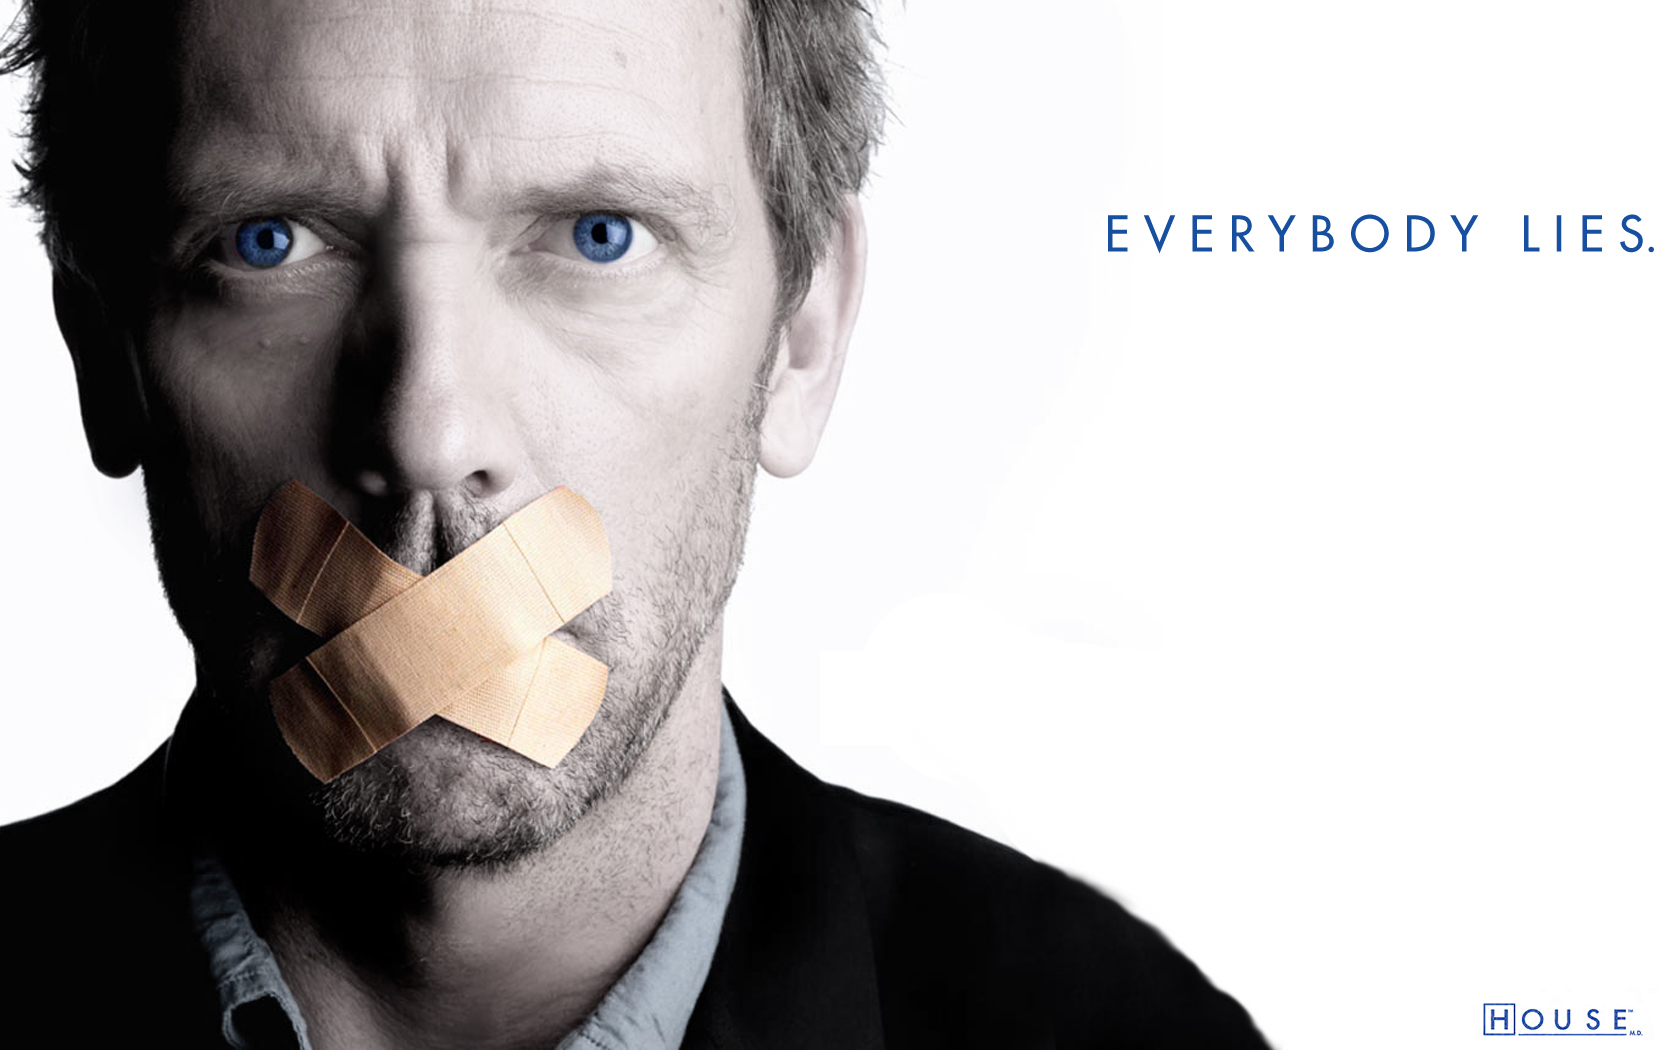 dr. house serie tv